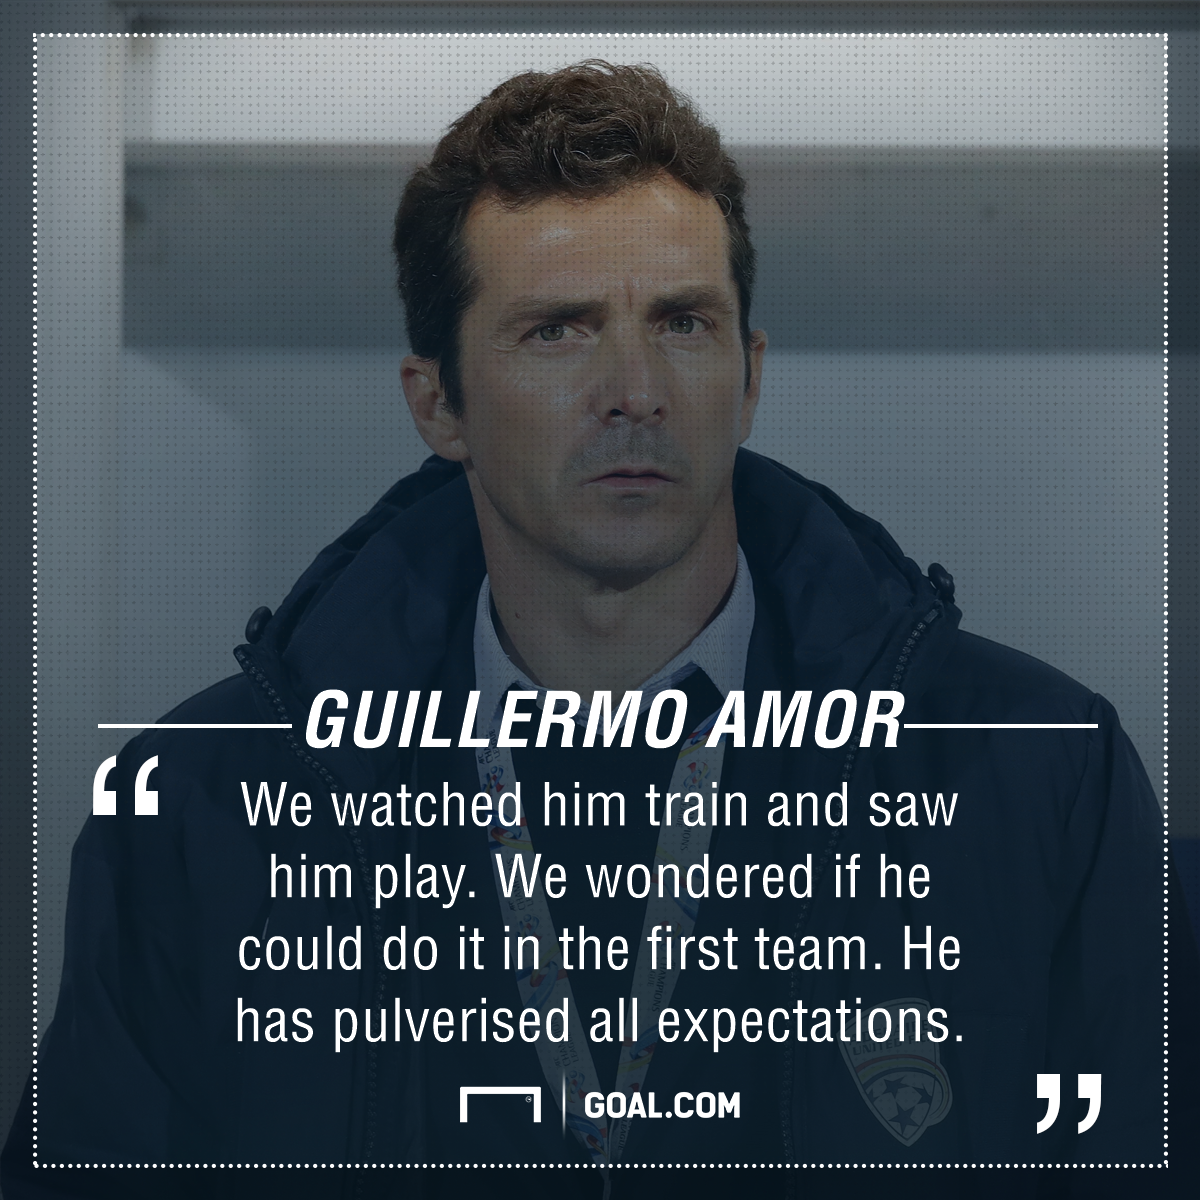 Guillermo Amor quote Messi